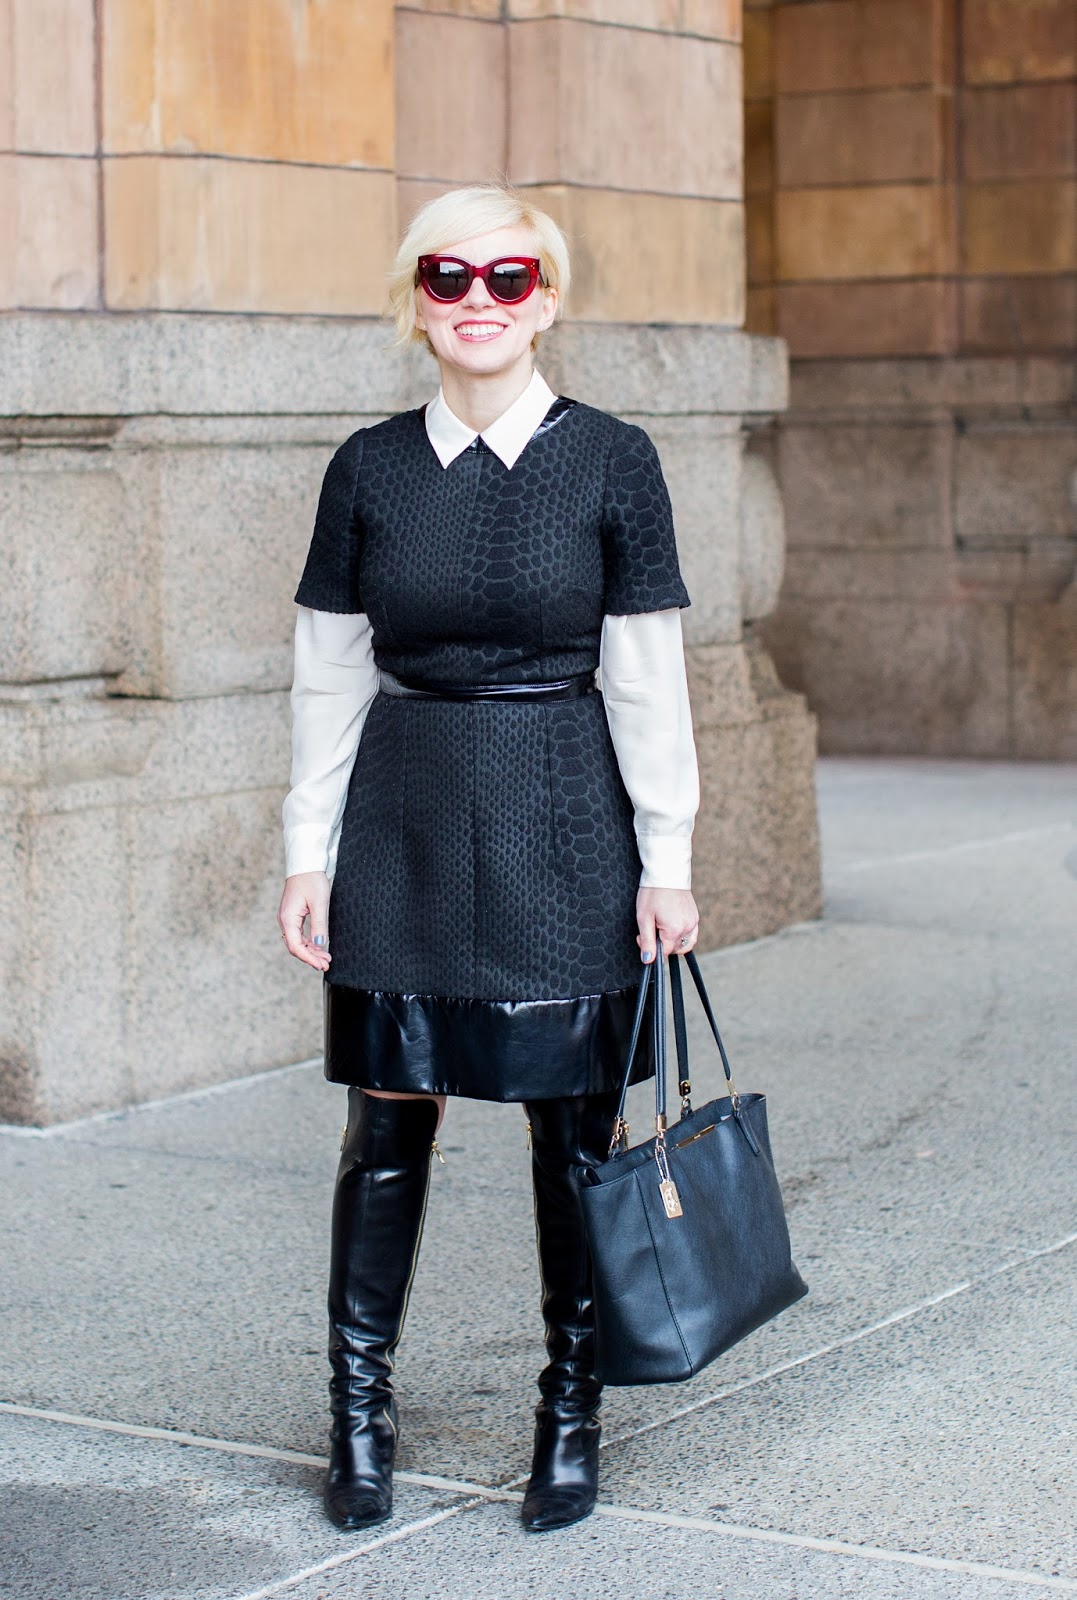 how to, what to wear, 3 ways to wear, apple shape, shirt, button up, leather, dress, workwear, over the knee boots, collared shirt, over 30, layering, monochrome, apple shape